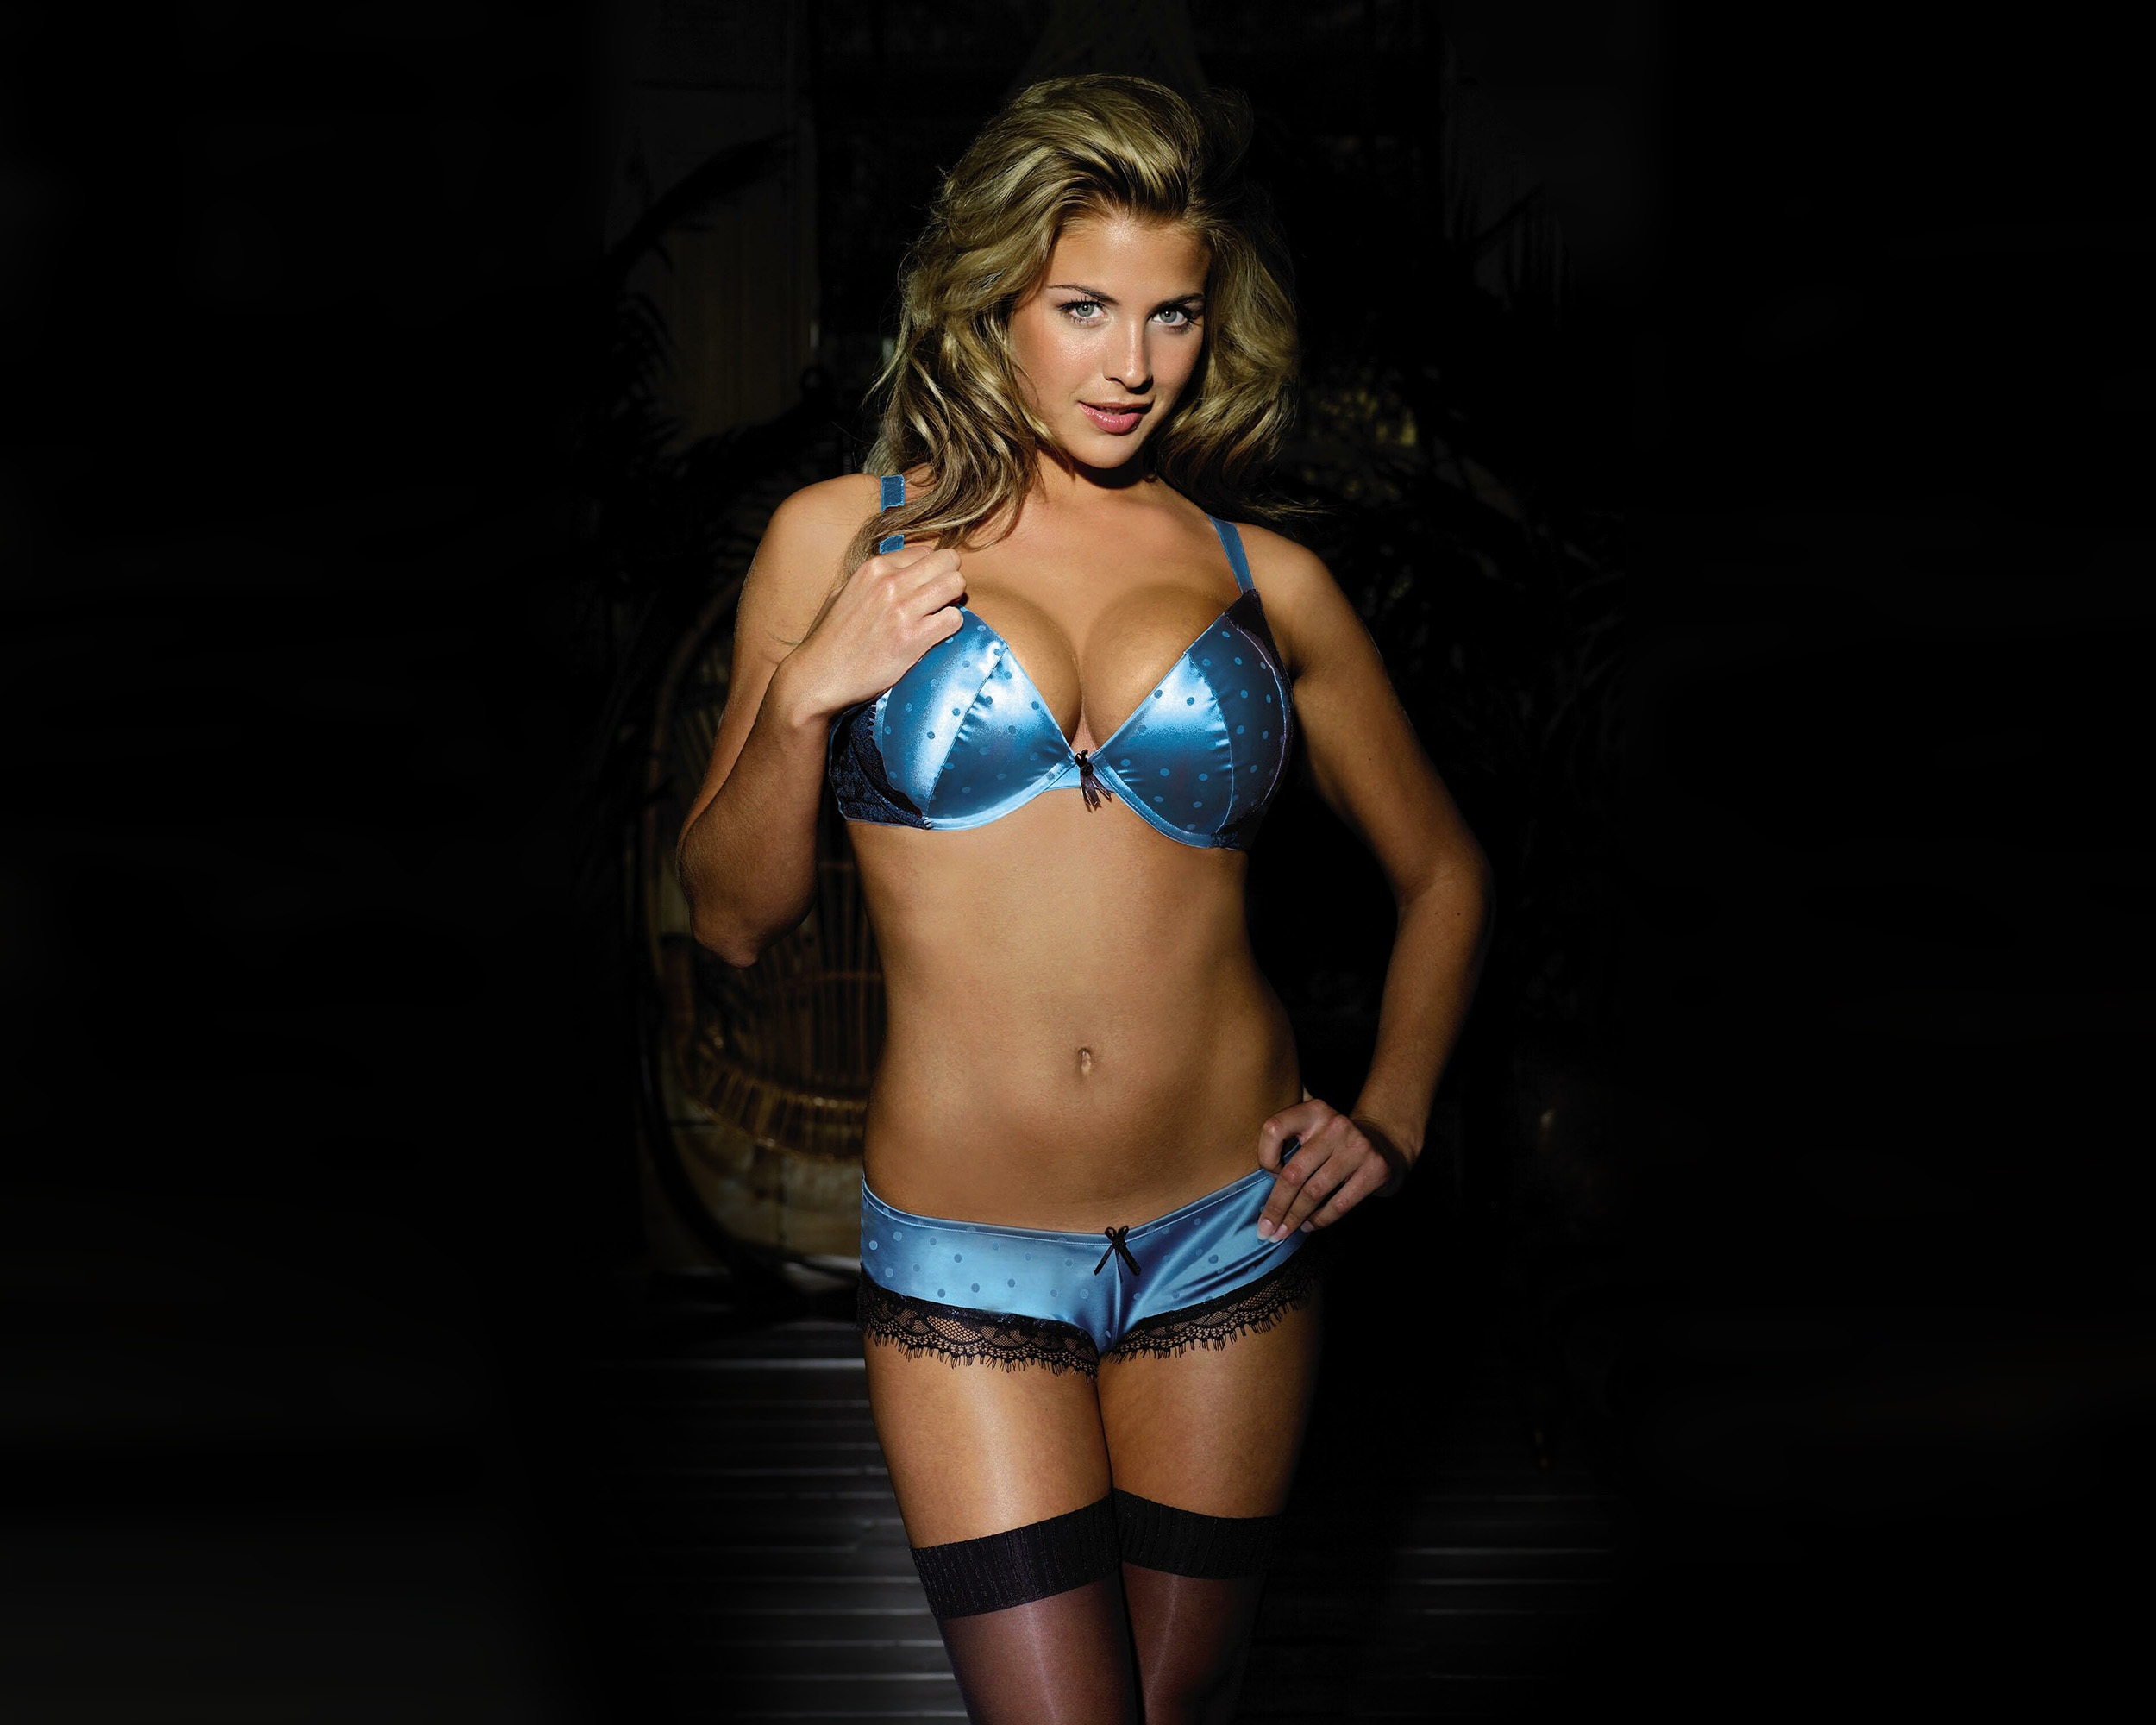 gemma atkinson image 40 - photo #27